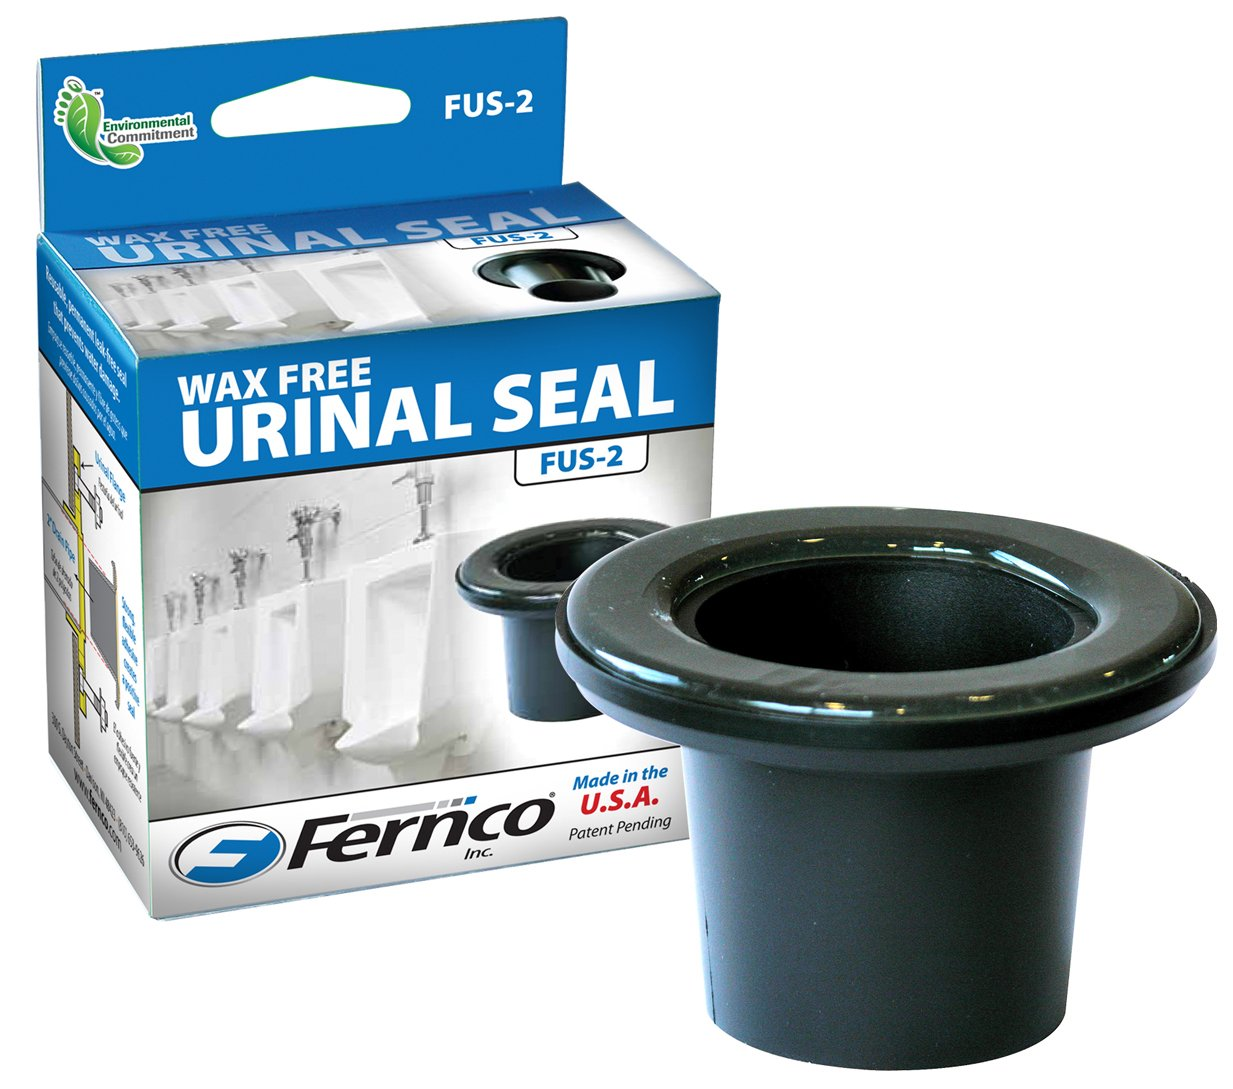 FERNCO FUS-2 WAX FREE URINAL SEAL FOR 2